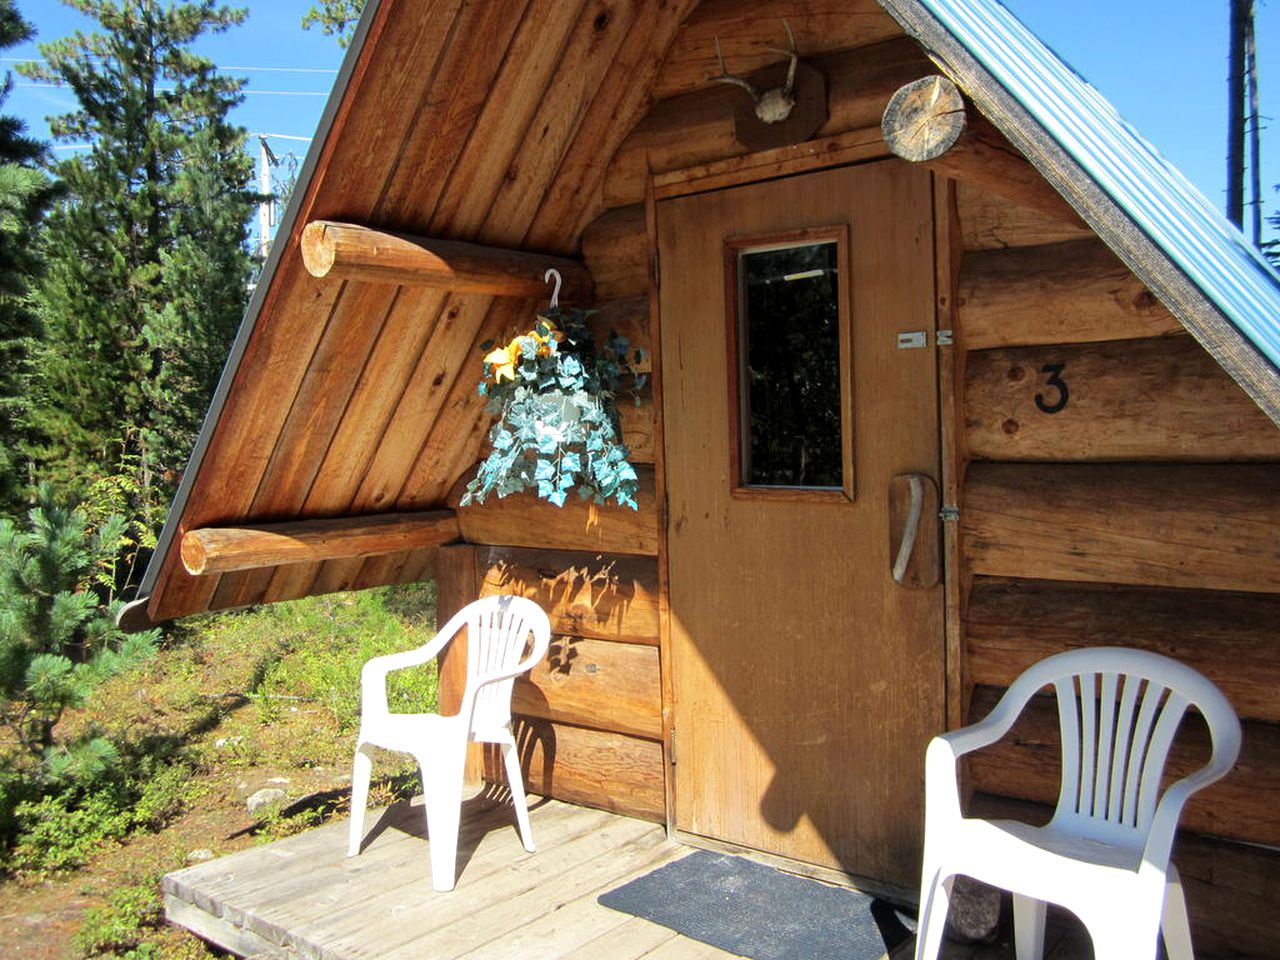 Blue River Cabins (British Columbia, Canada) near Eleanor Lake